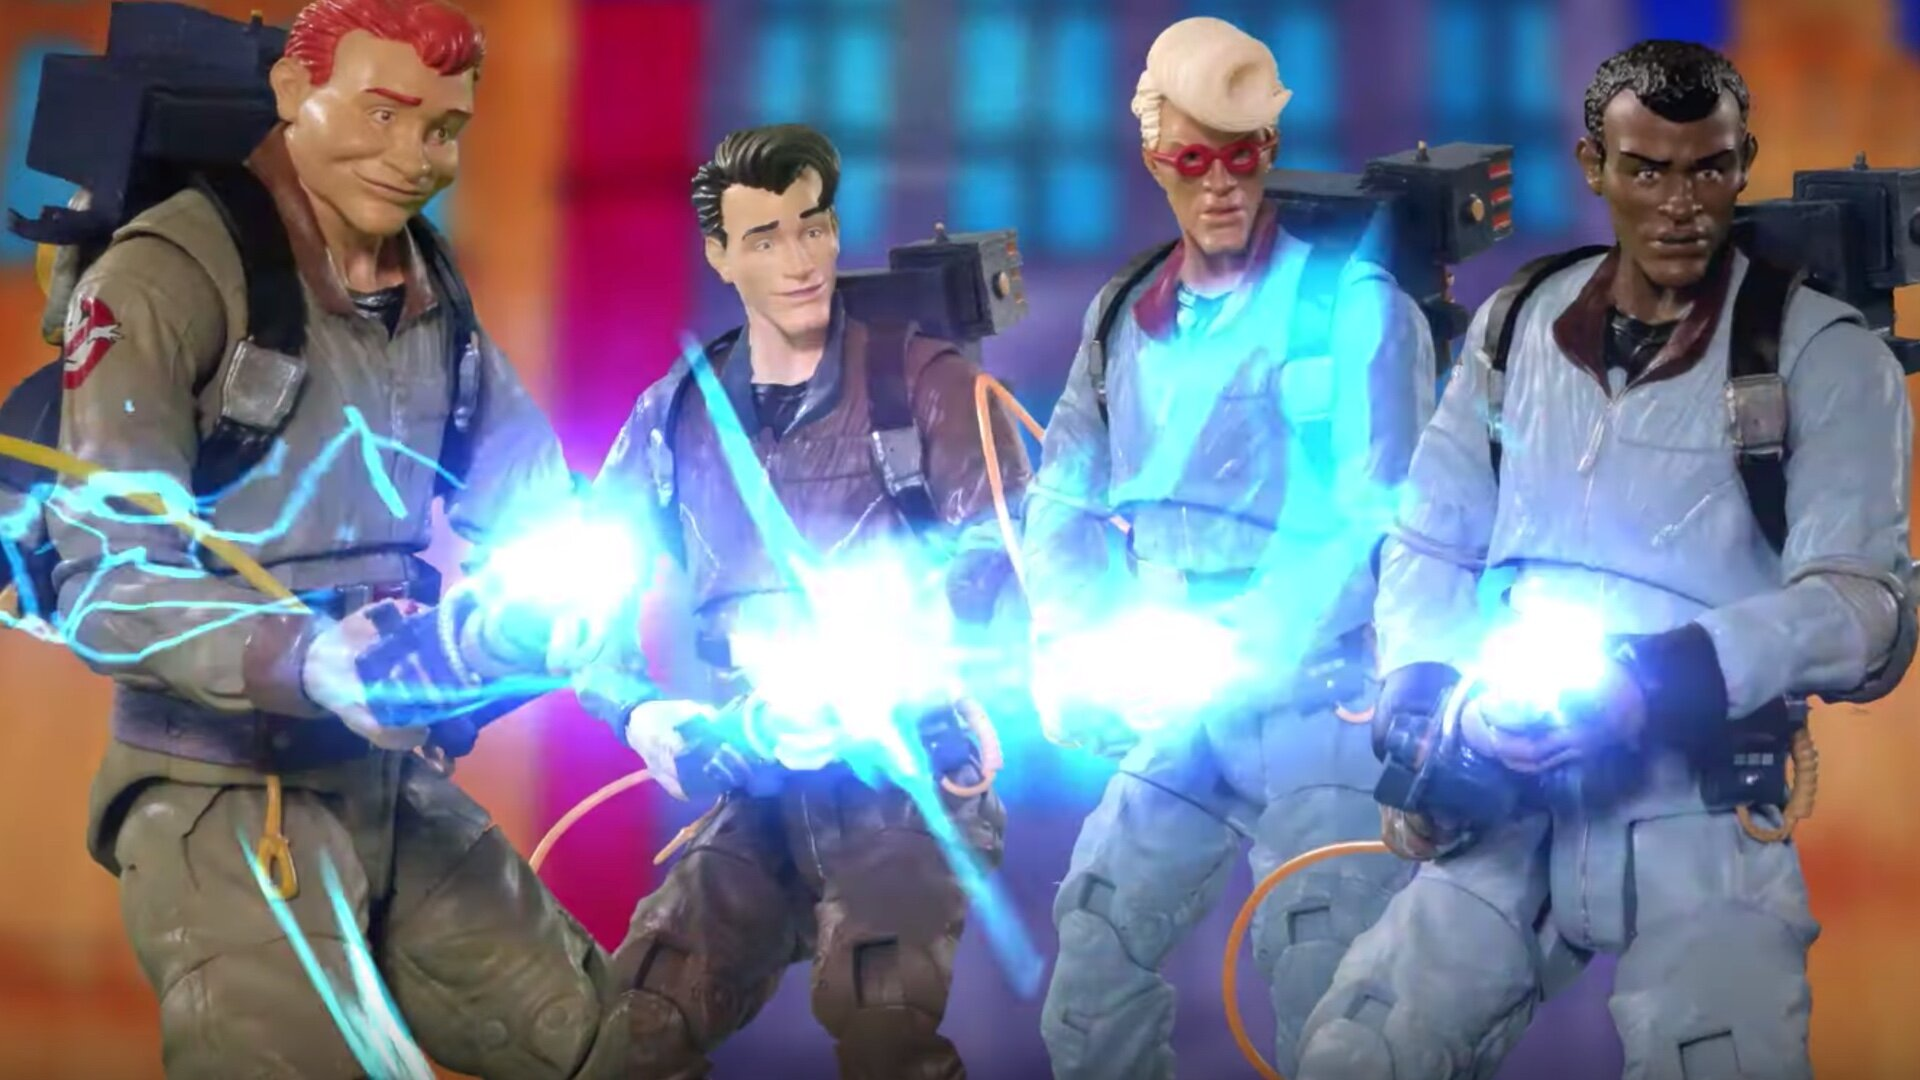 cool-stop-motion-recreation-of-the-real-ghostbusters-intro-social.jpg